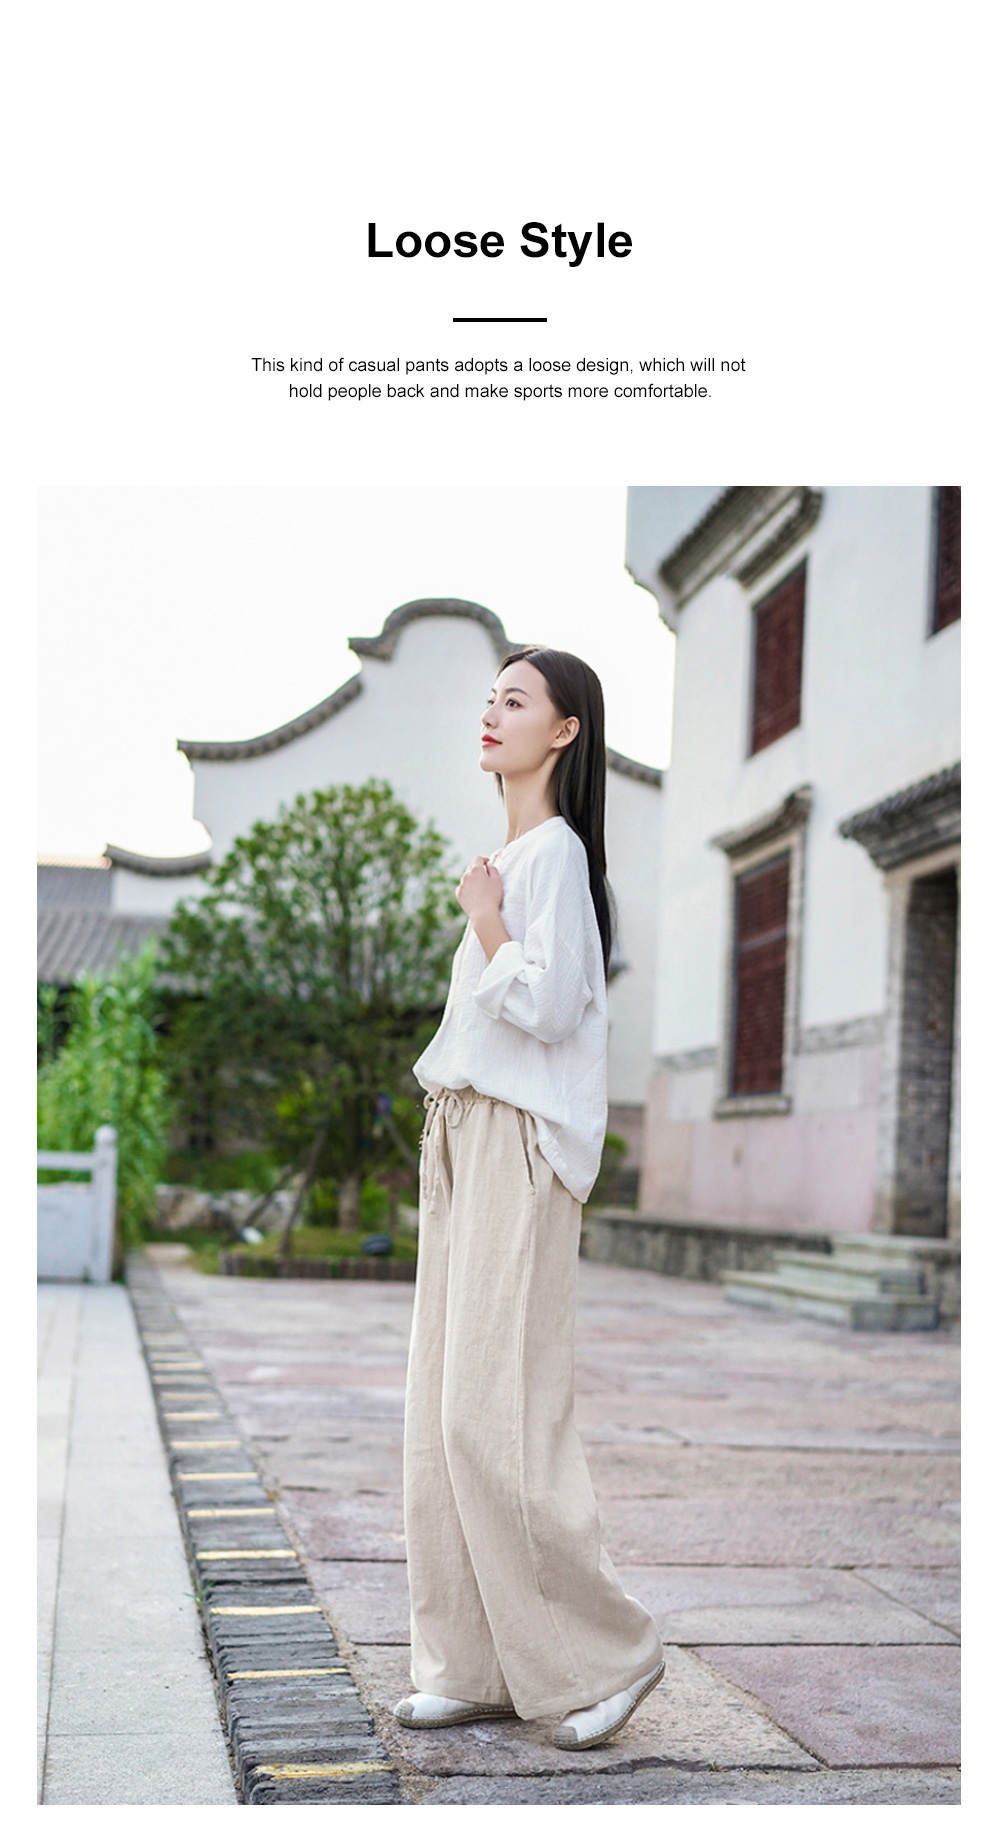 Literature Art Retro Chinese Style Cotton Hemp Leisure Pants Meditation Practice Pant Taiji Pants Linen Pants Women's Wide Leg Pants 1